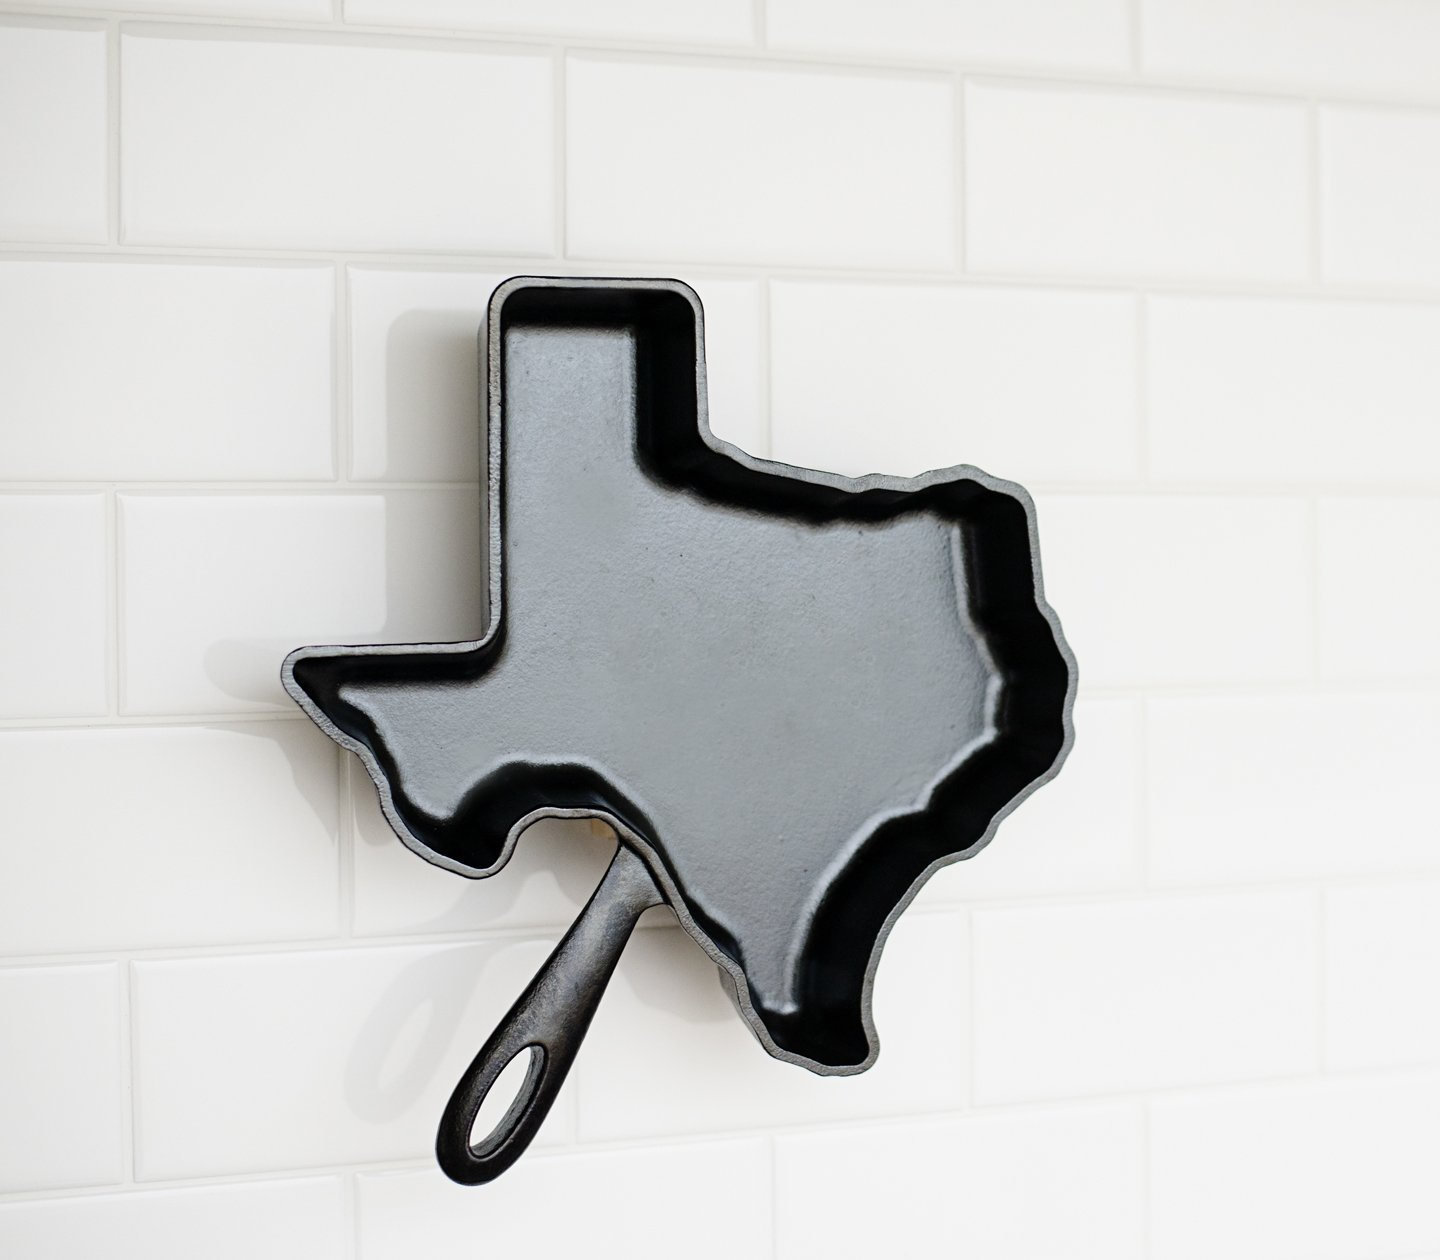 Texas cast iron Skillet by American Skillet Company